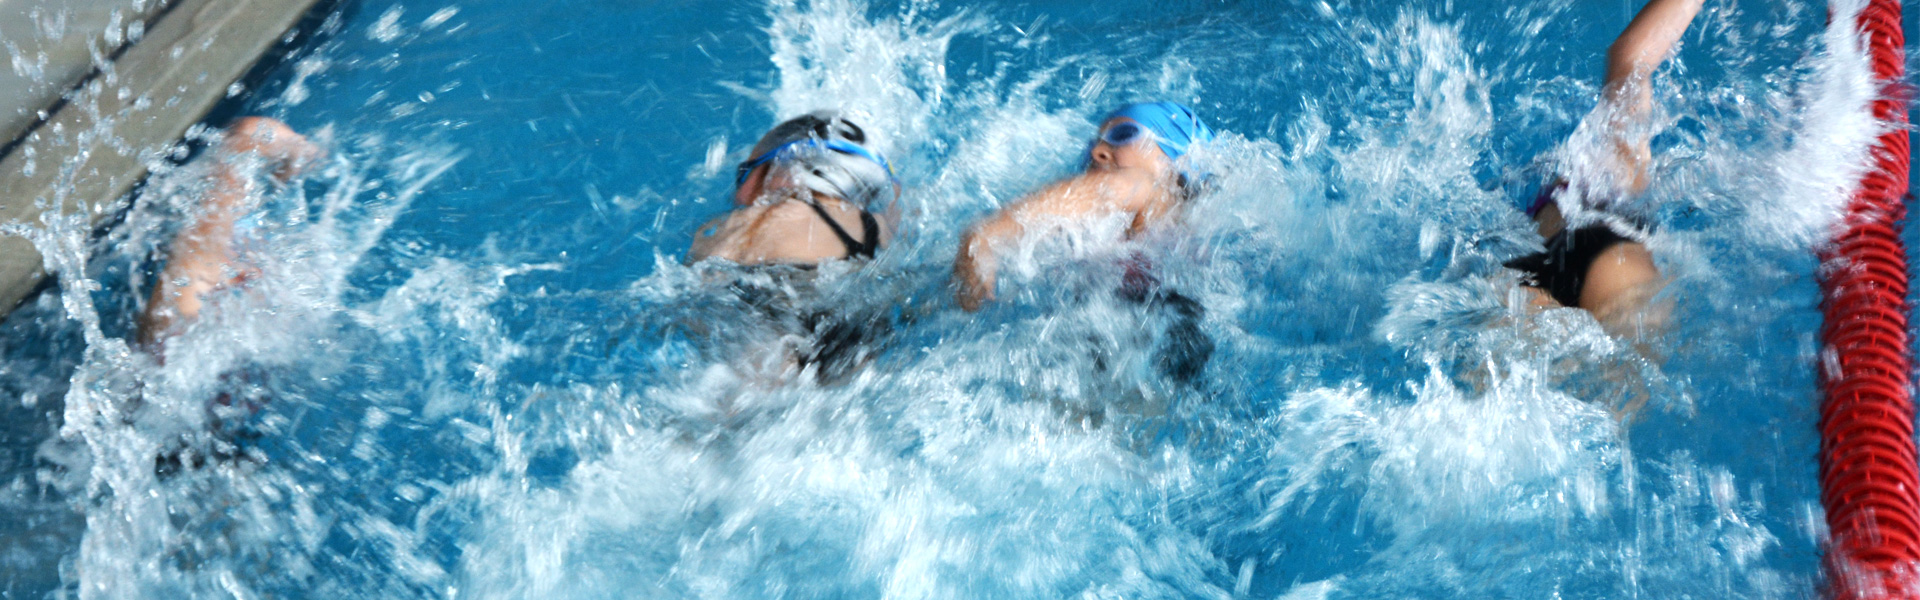 "<div style=""background: rgba(0,0,0,0.3) ; padding: 12px;""><h2>TRAININGSINFOS</h2> <p>SWIM / BIKE / RUN Training<br /> <br />"